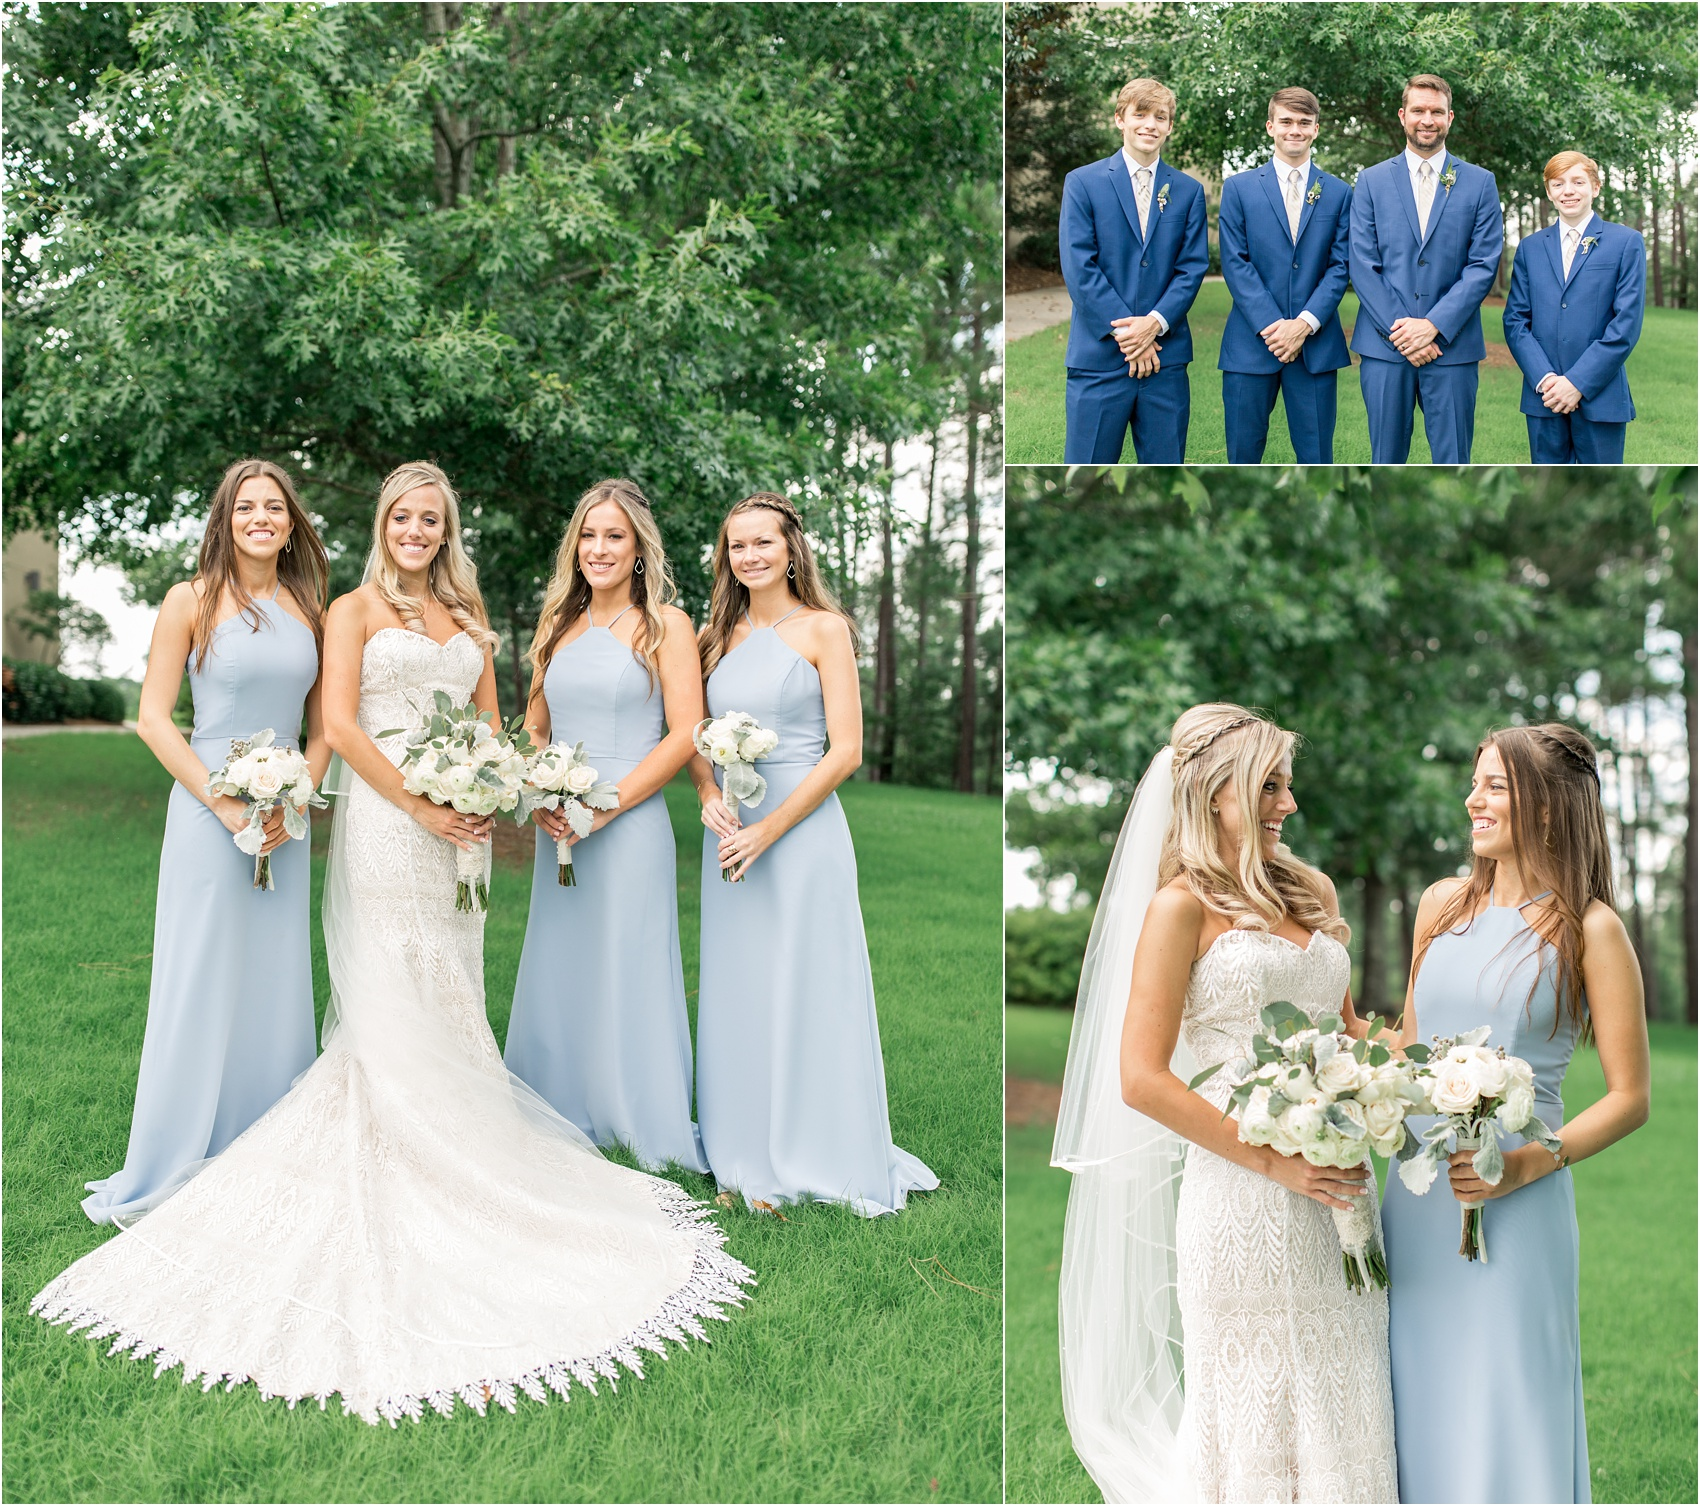 Savannah Eve Photography- Barkie-Wilson Wedding- Sneak Peek-42.jpg